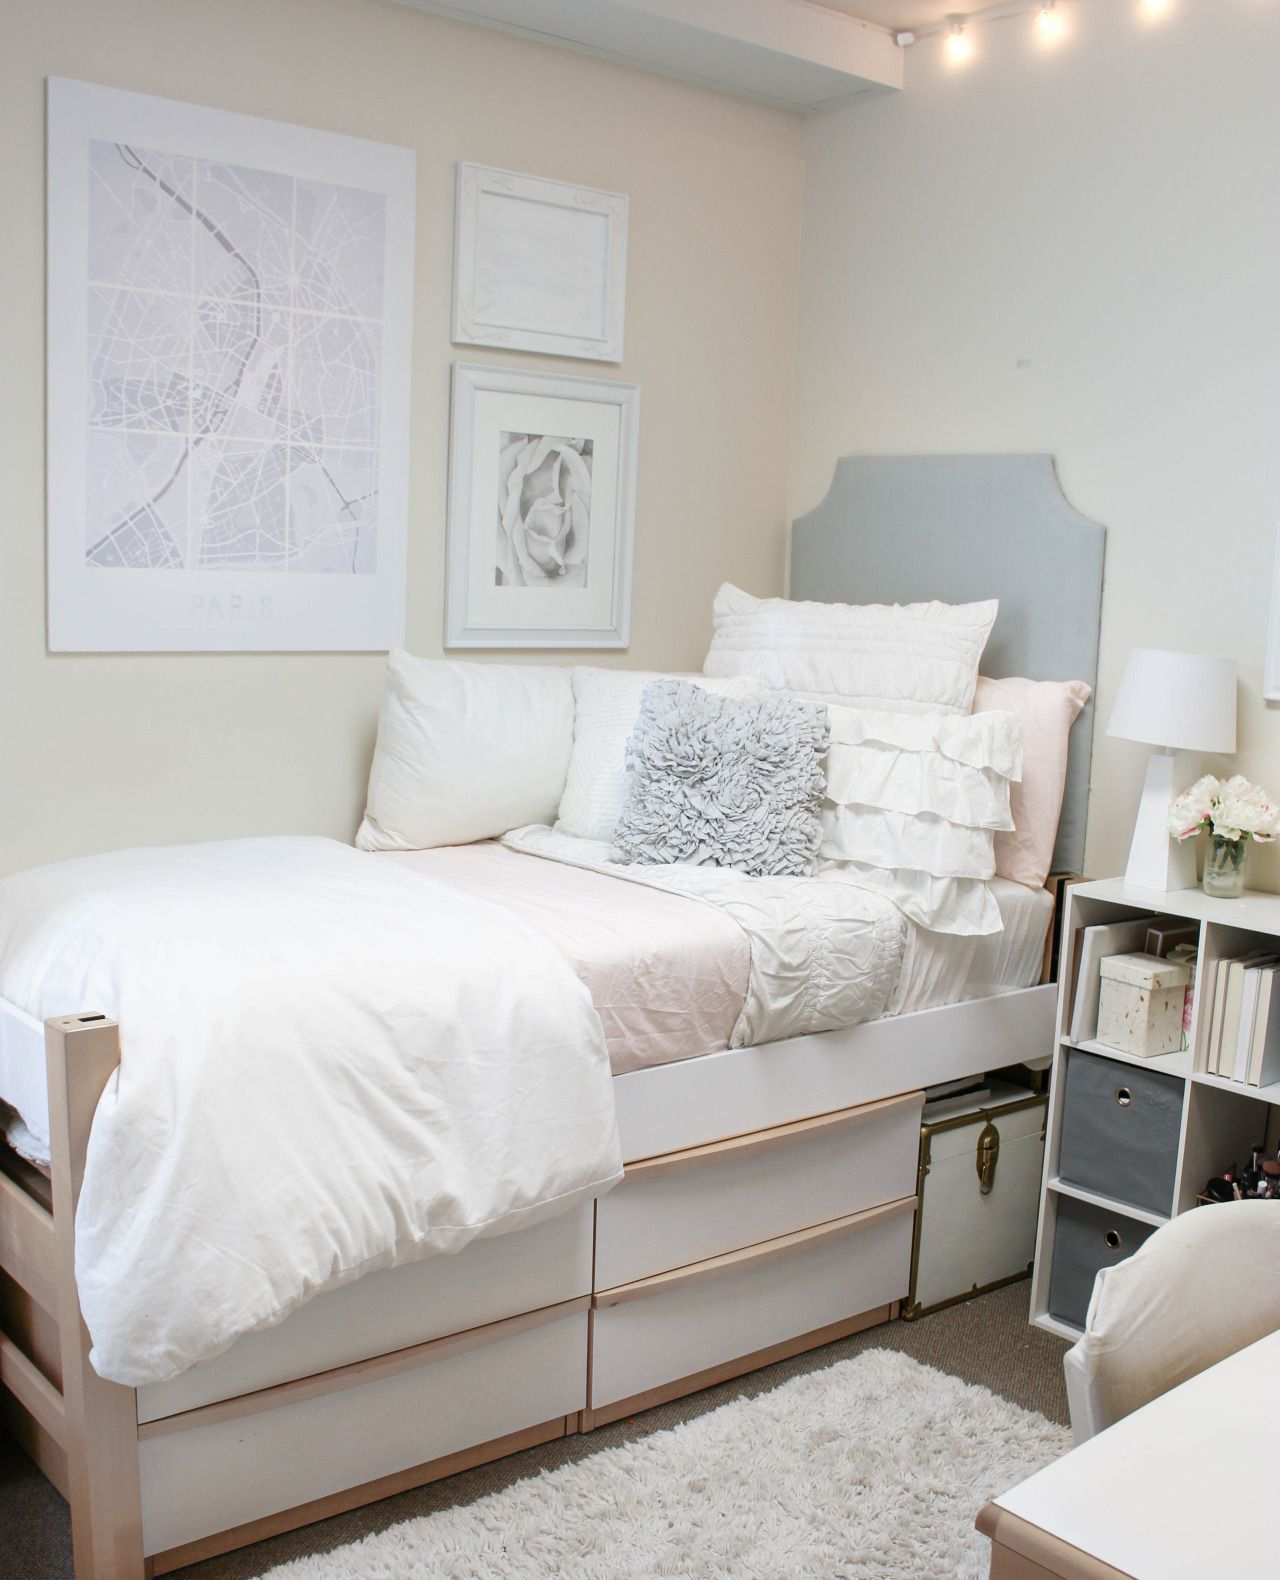 Dorm room essentials dorm decor in 2019 cool dorm - Dorm room bedding ideas ...